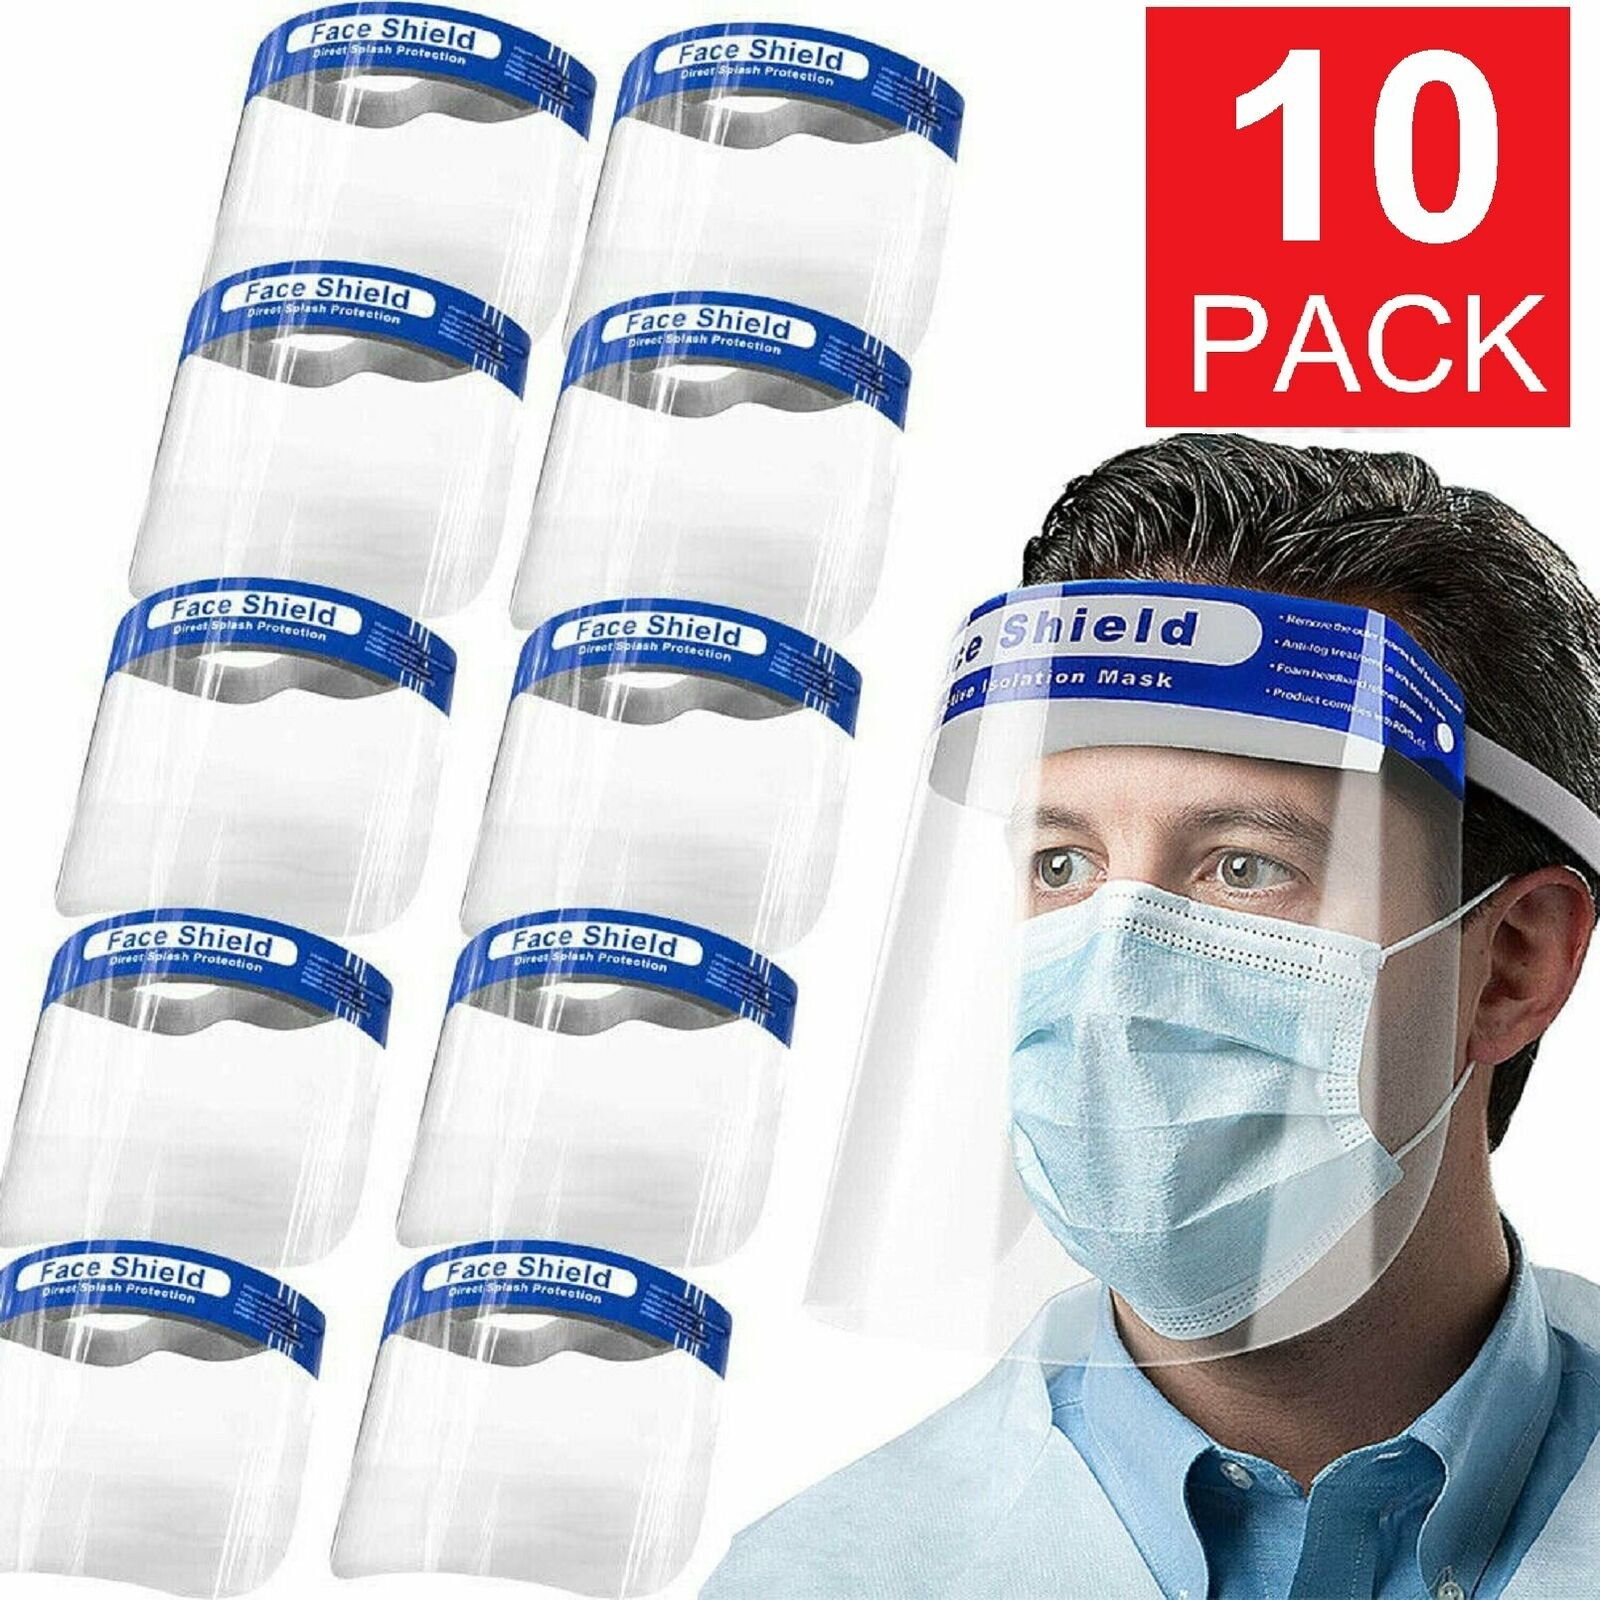 LOWEST EVER: Reusable Face Shield US Warehouse Blowout - Protective and Great for Adults & Kids - Ships Out Same/Next Day!